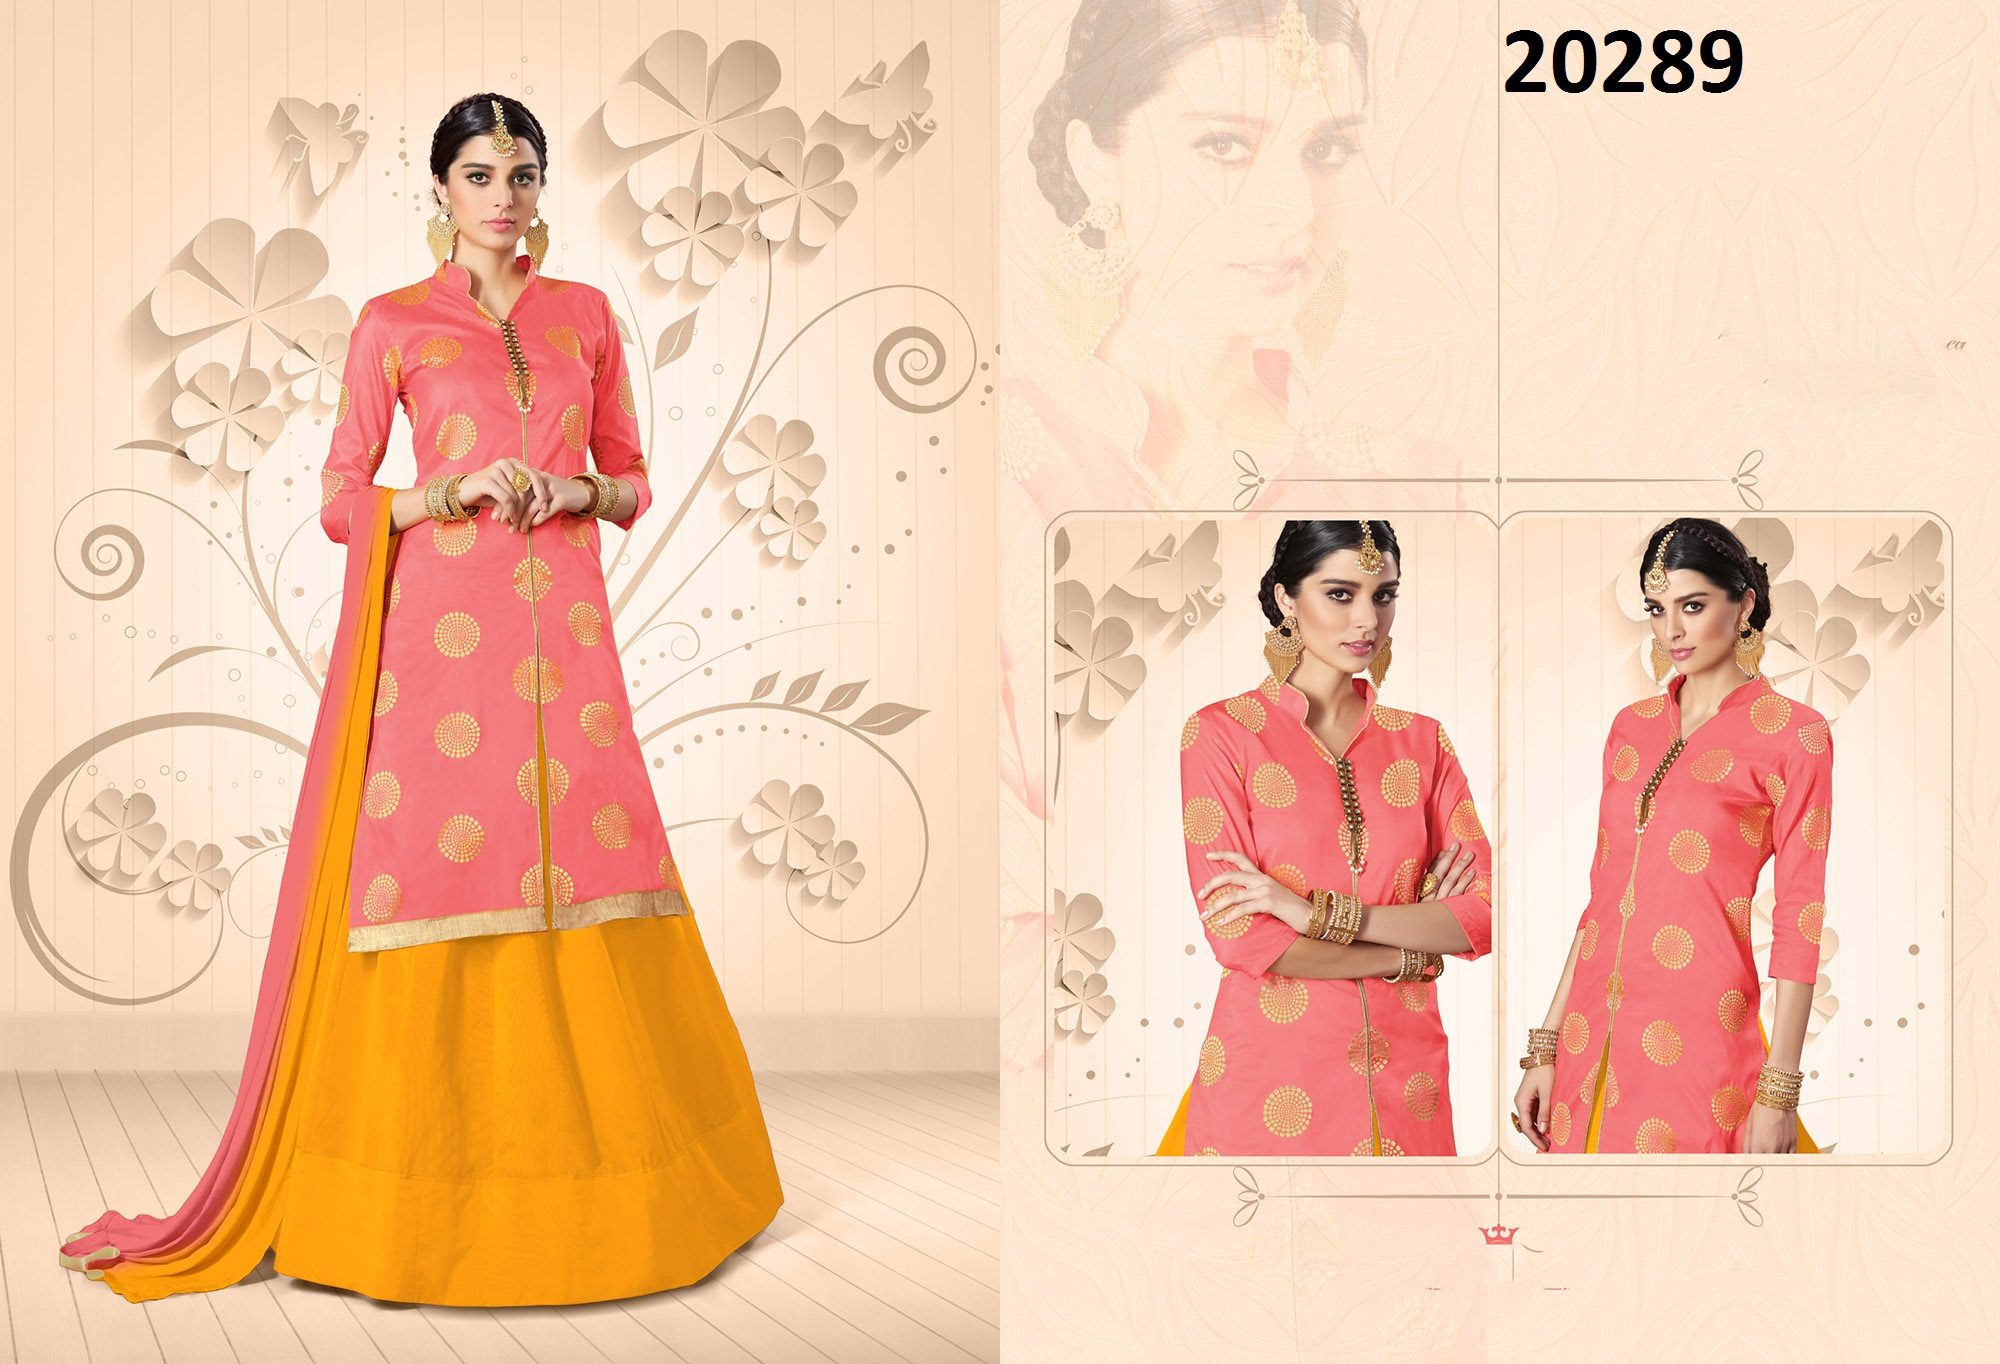 Peach Taffeta Jacquard Long Kurta with Lehenga Design no Amruta 20289